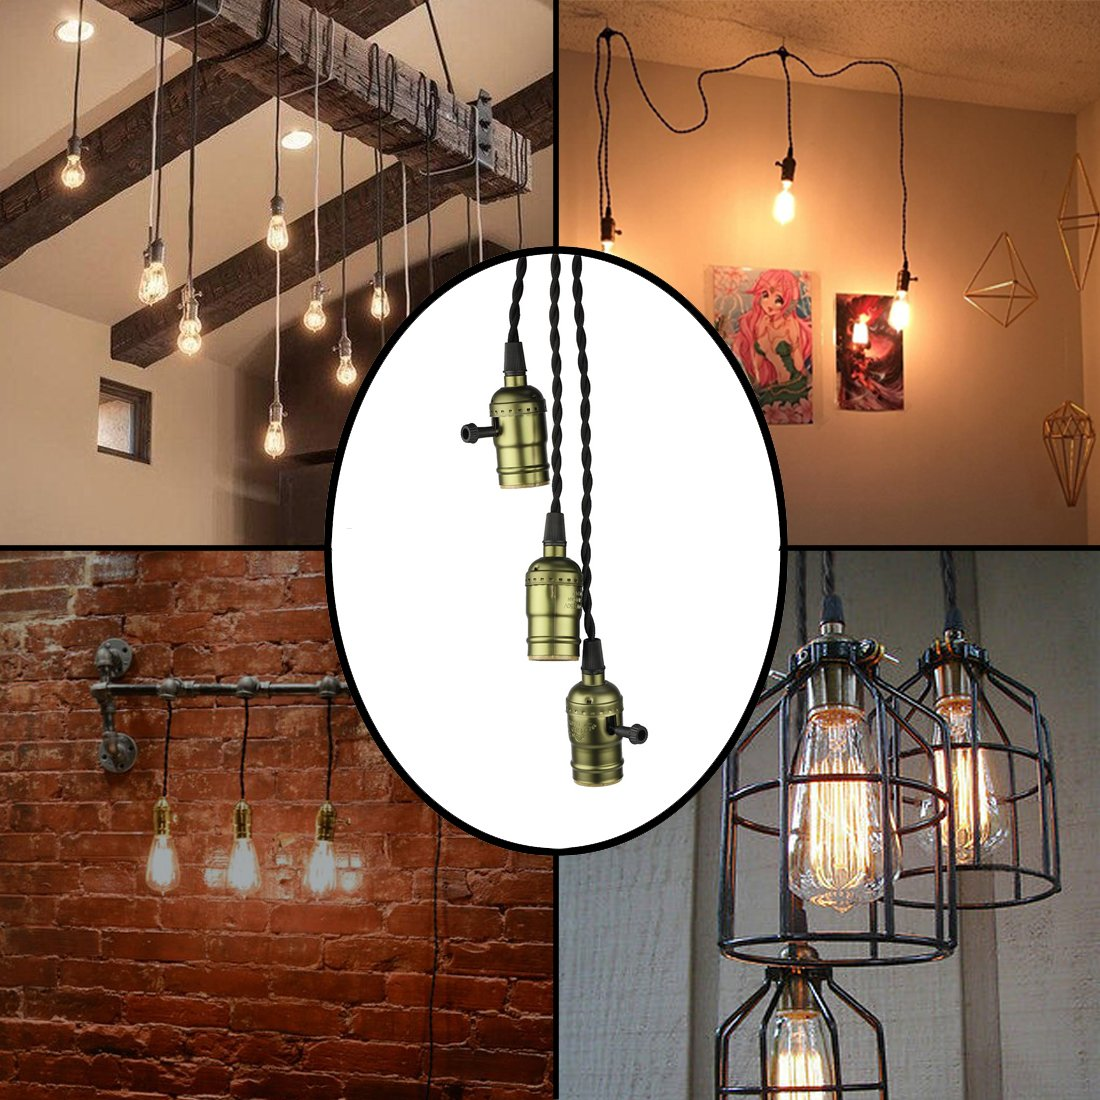 Vintage Triple Light Sockets Pendant Hanging Light Cord Kit Plug-in Light Fixture with On/Off Switch E26/E27 Base Retro Twisted Black Textile Cord for Industrial Light Fixture in Basement, Bedroom by Seaside village (Image #4)